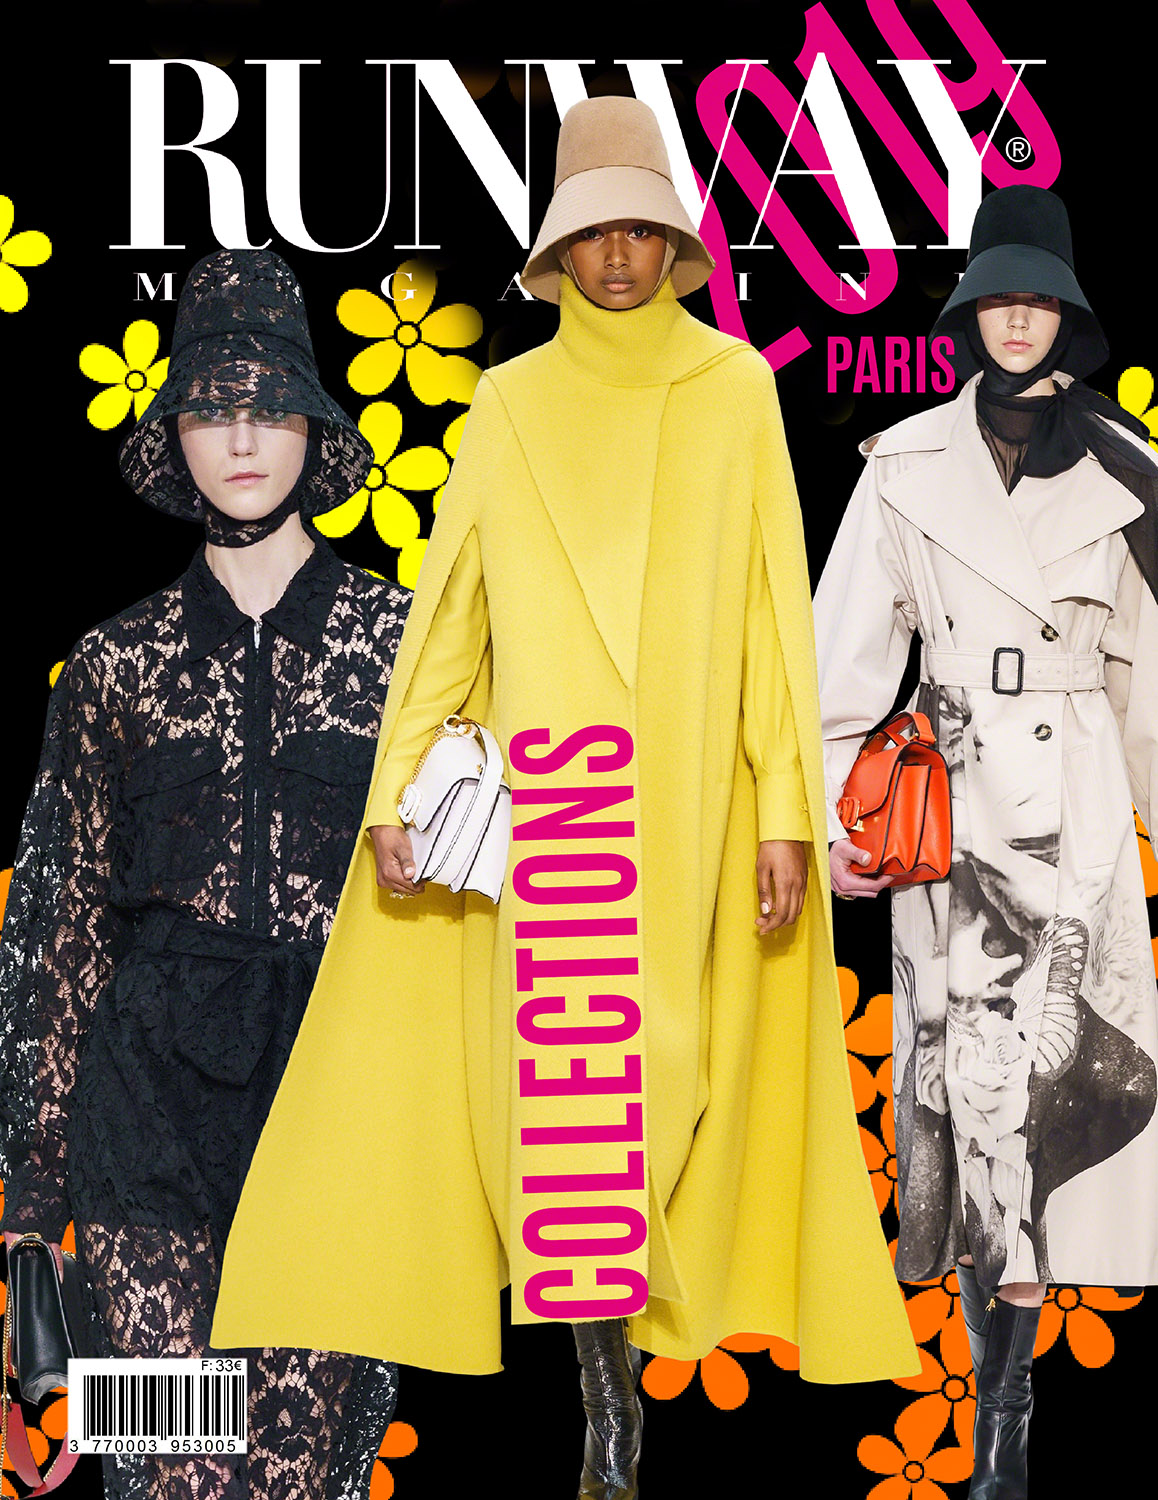 Runway Magazine 2019 Paris Collections